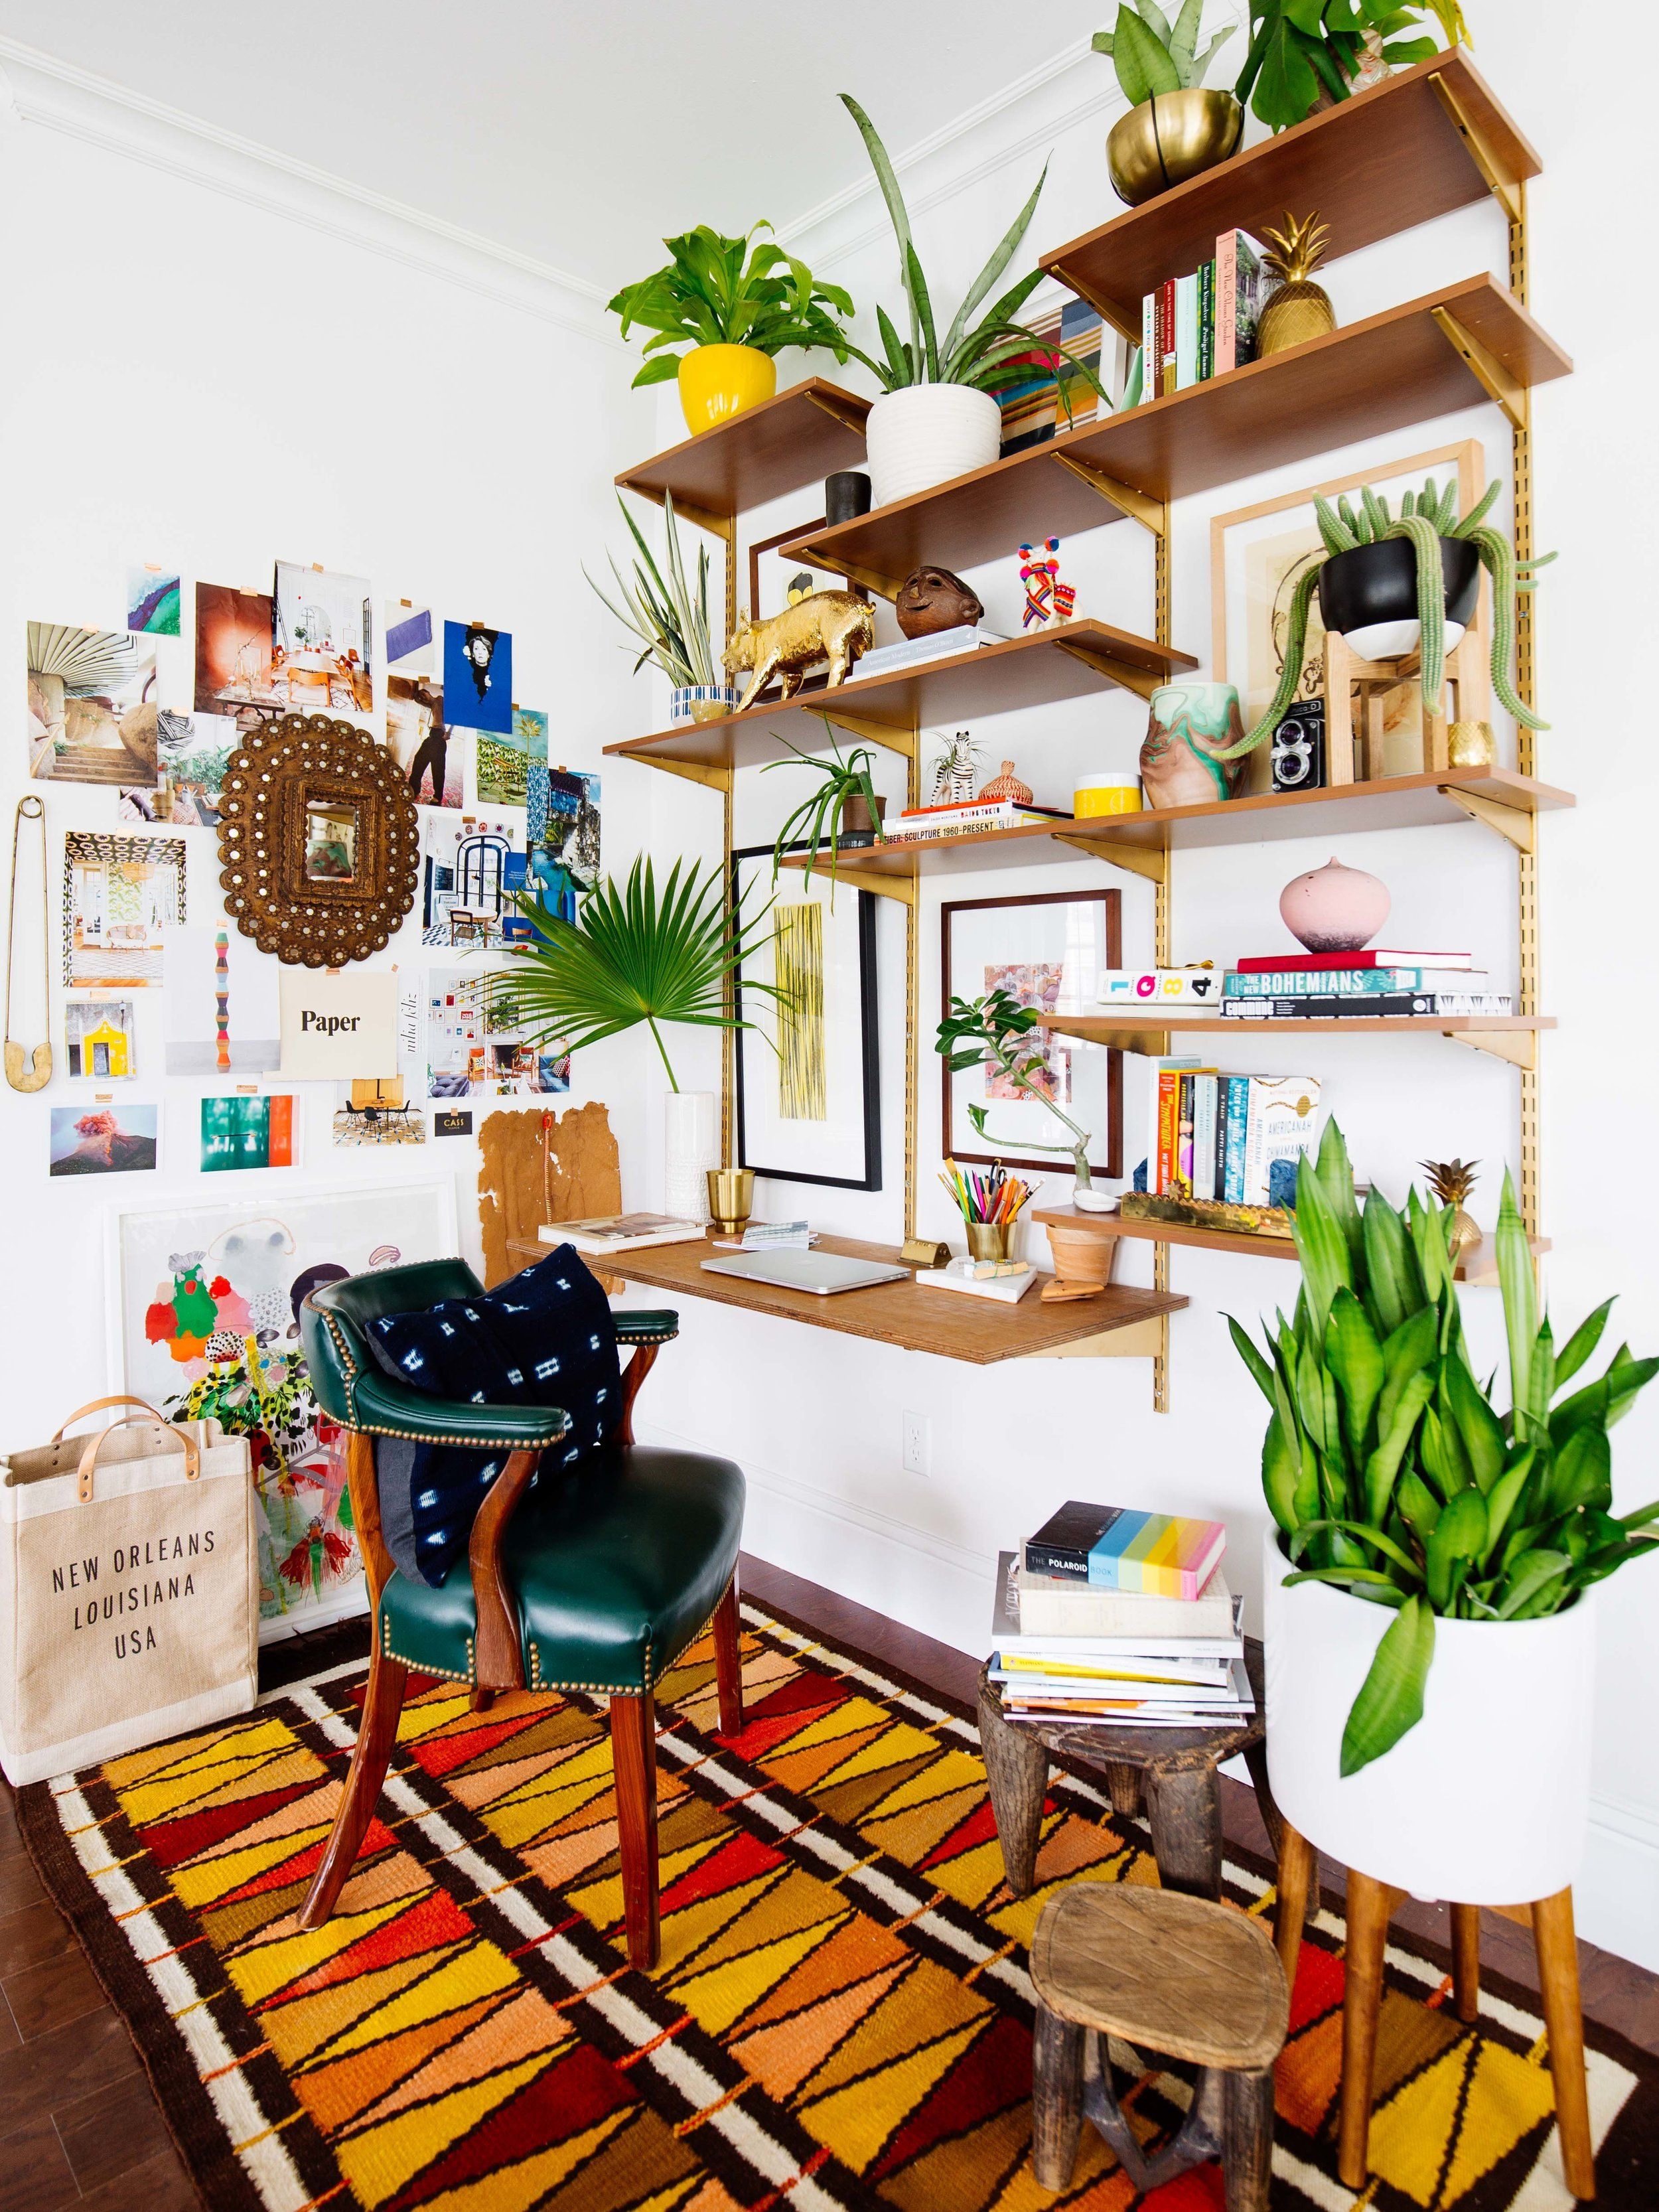 15 Genius Ways To Maximize A Small Space